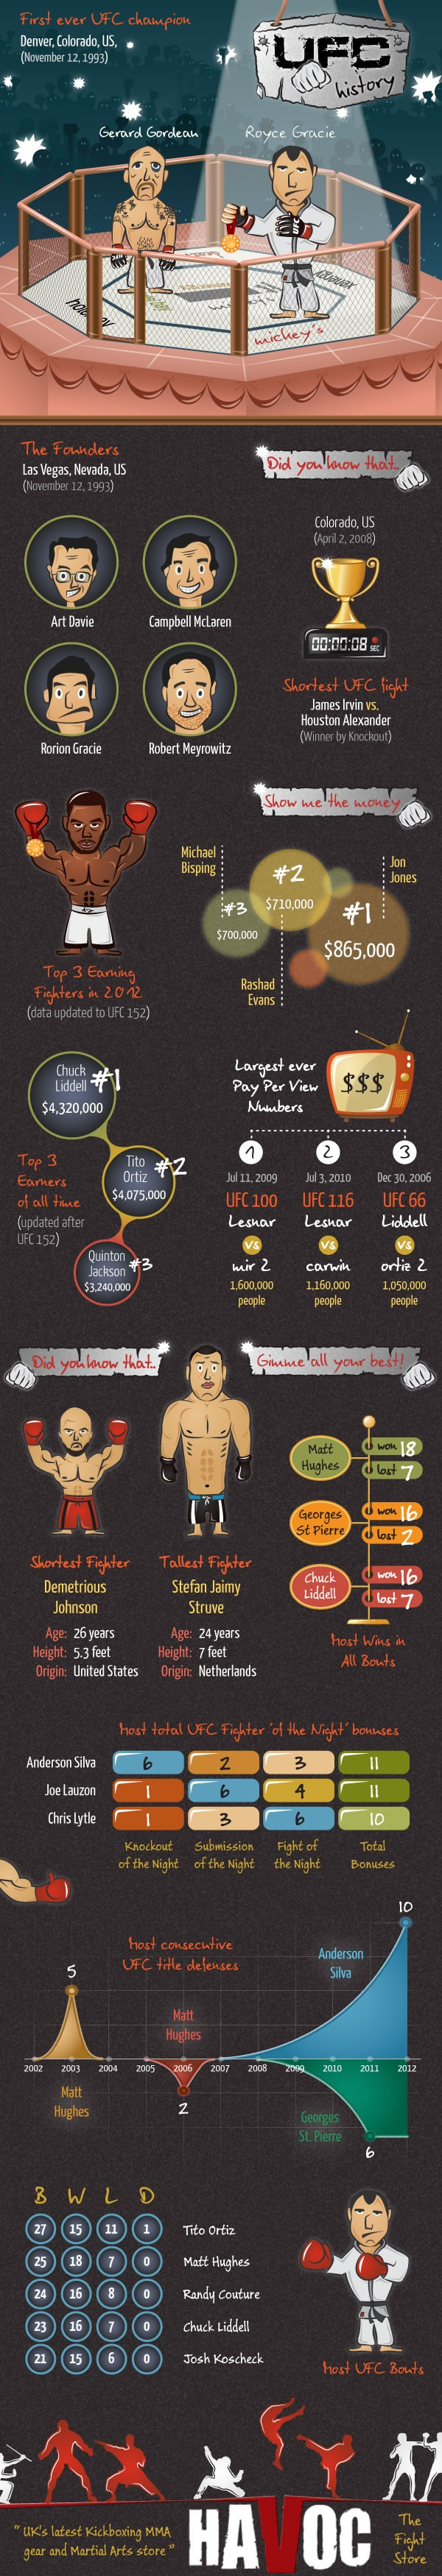 UFC-Facts-Infographic